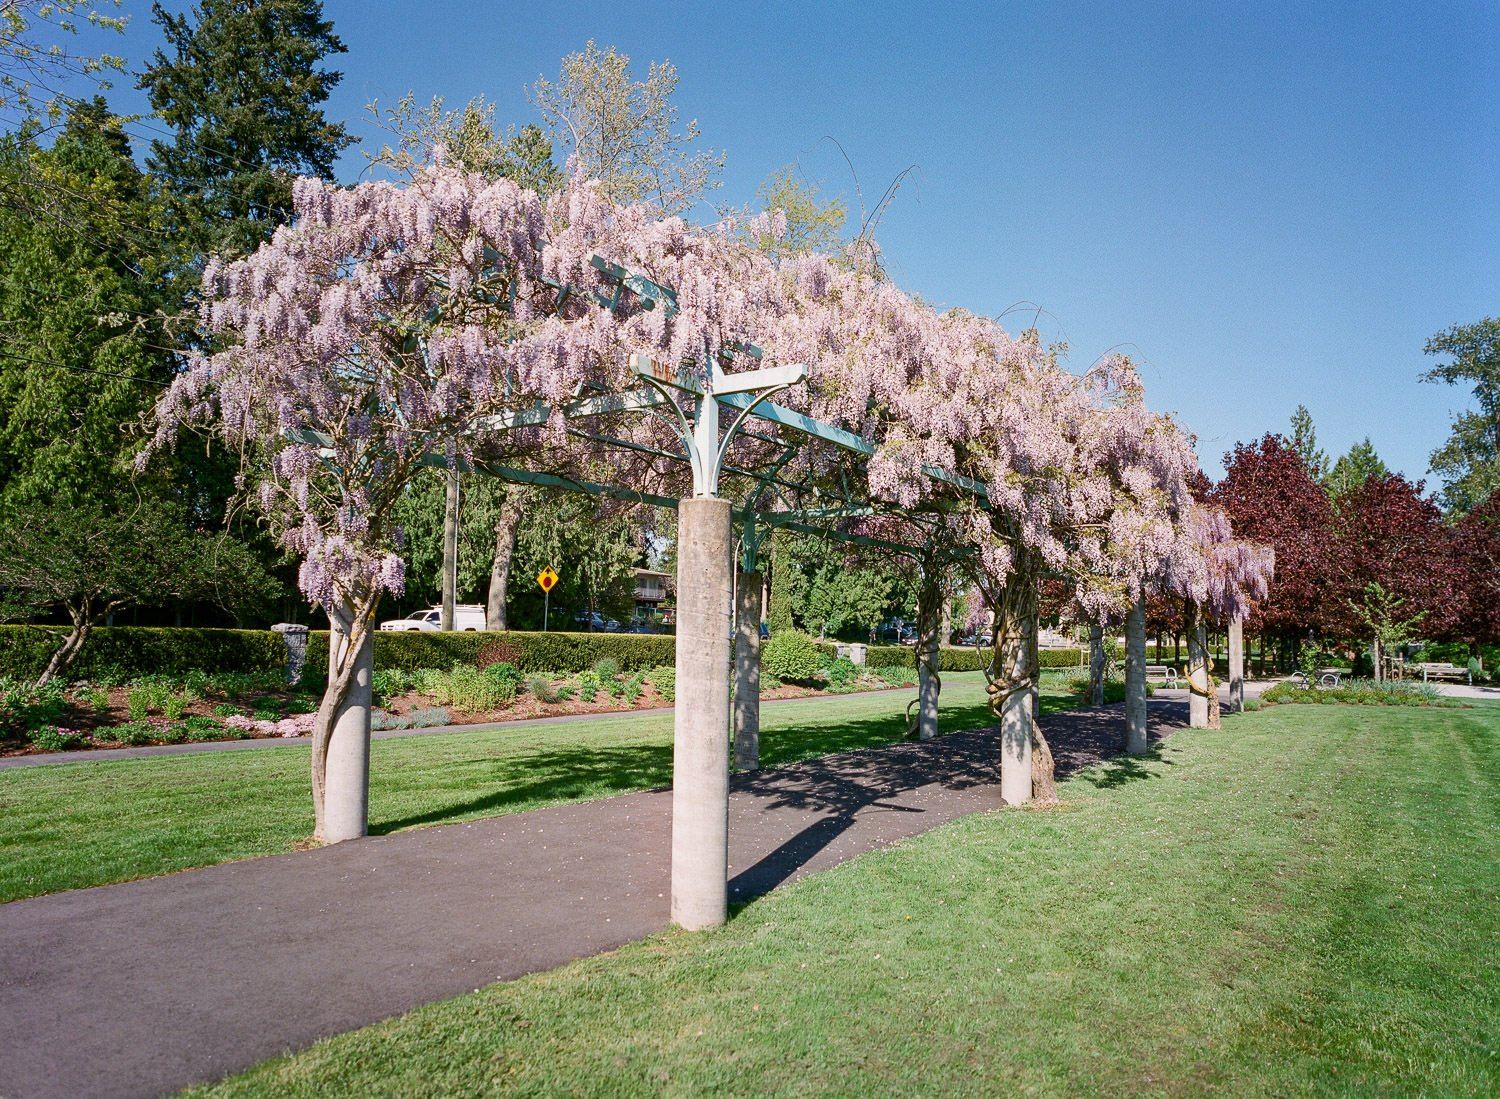 Pergola with flowers blooming